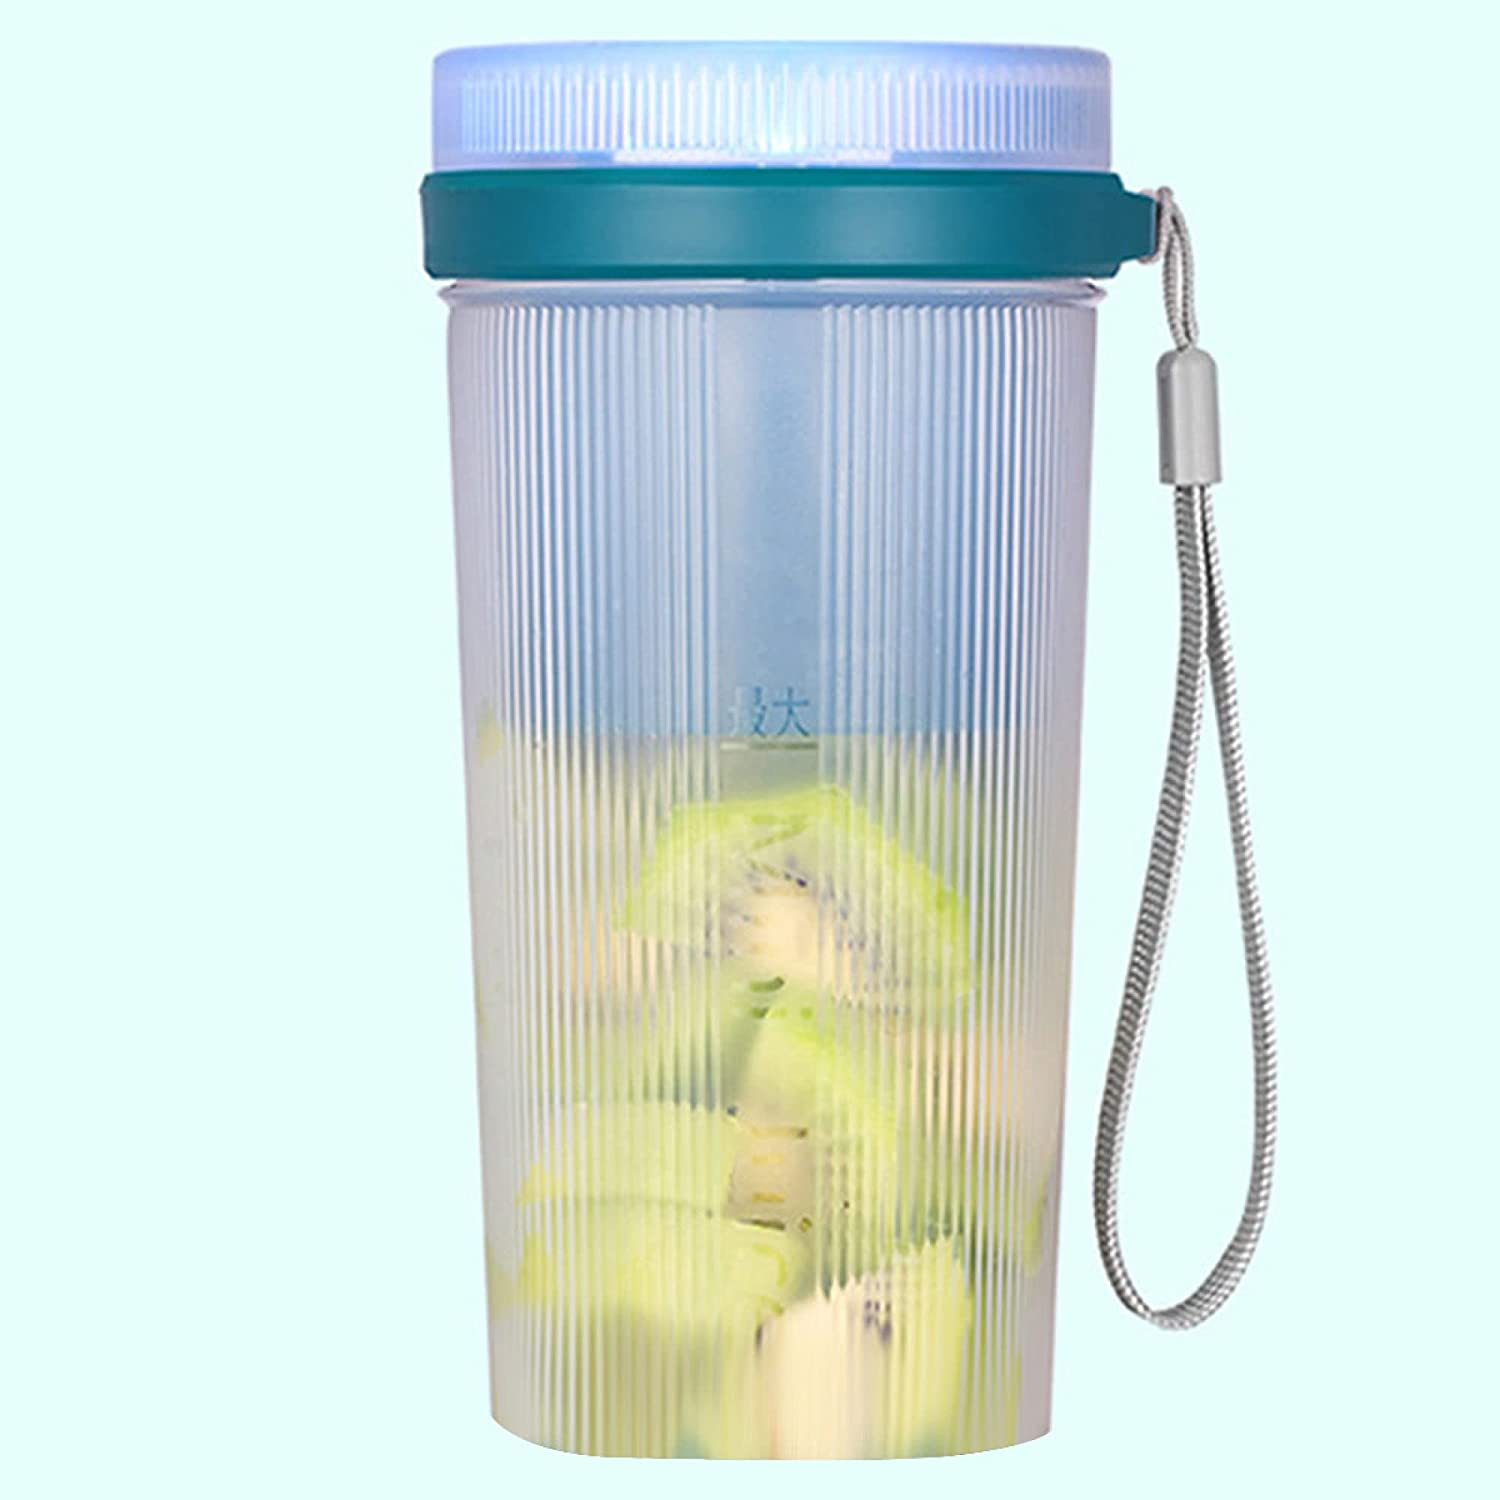 Portable Blender Spring new work Max 62% OFF one after another Mini Handheld Mi Fruit Shakes Smoothie